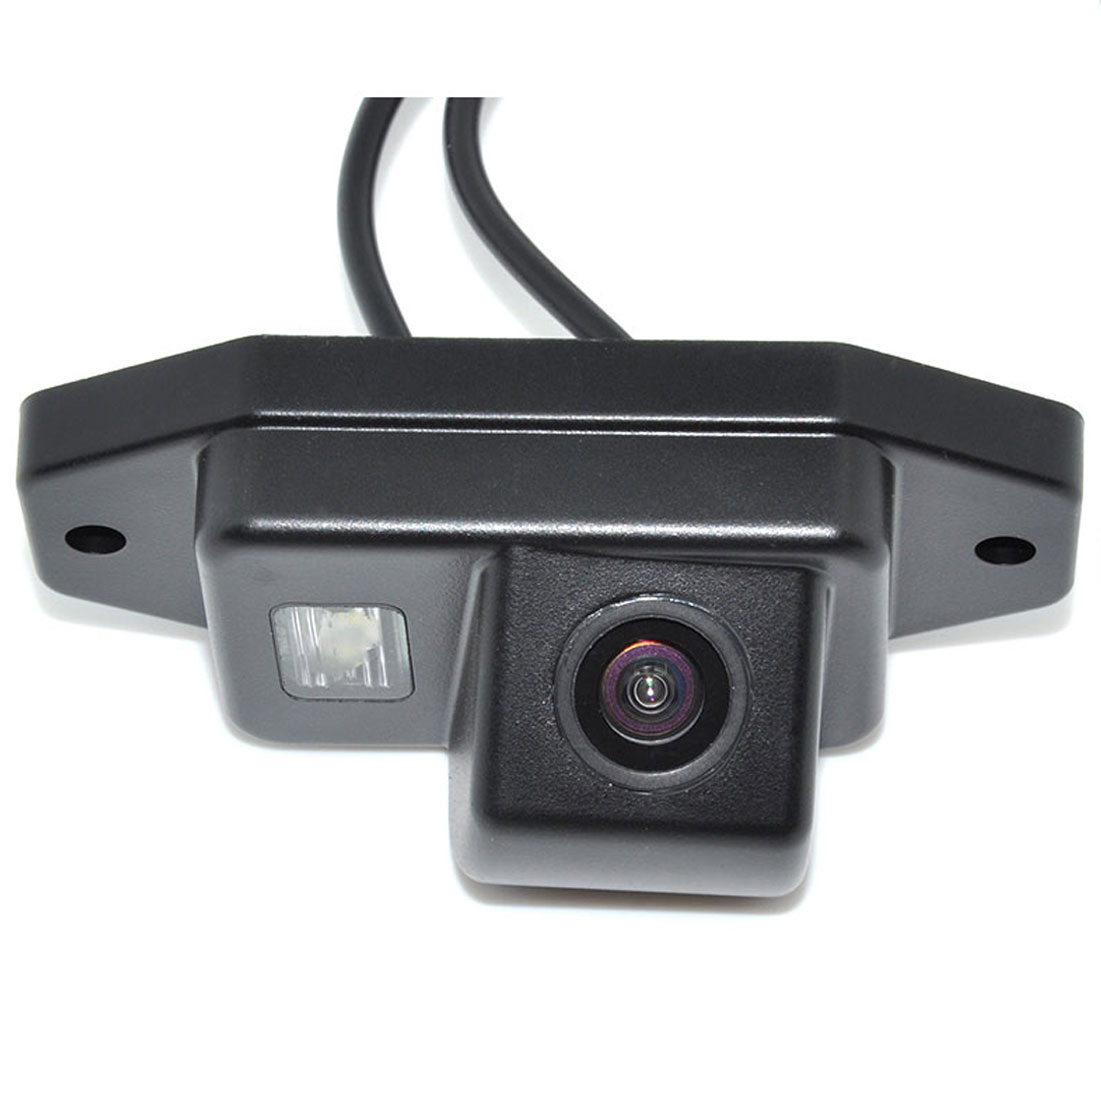 Camera cefn cefn HD camera cefn camera ar gyfer 2002-2009 Toyota Land Cruiser 120 Series Toyota Prado 2700 4000